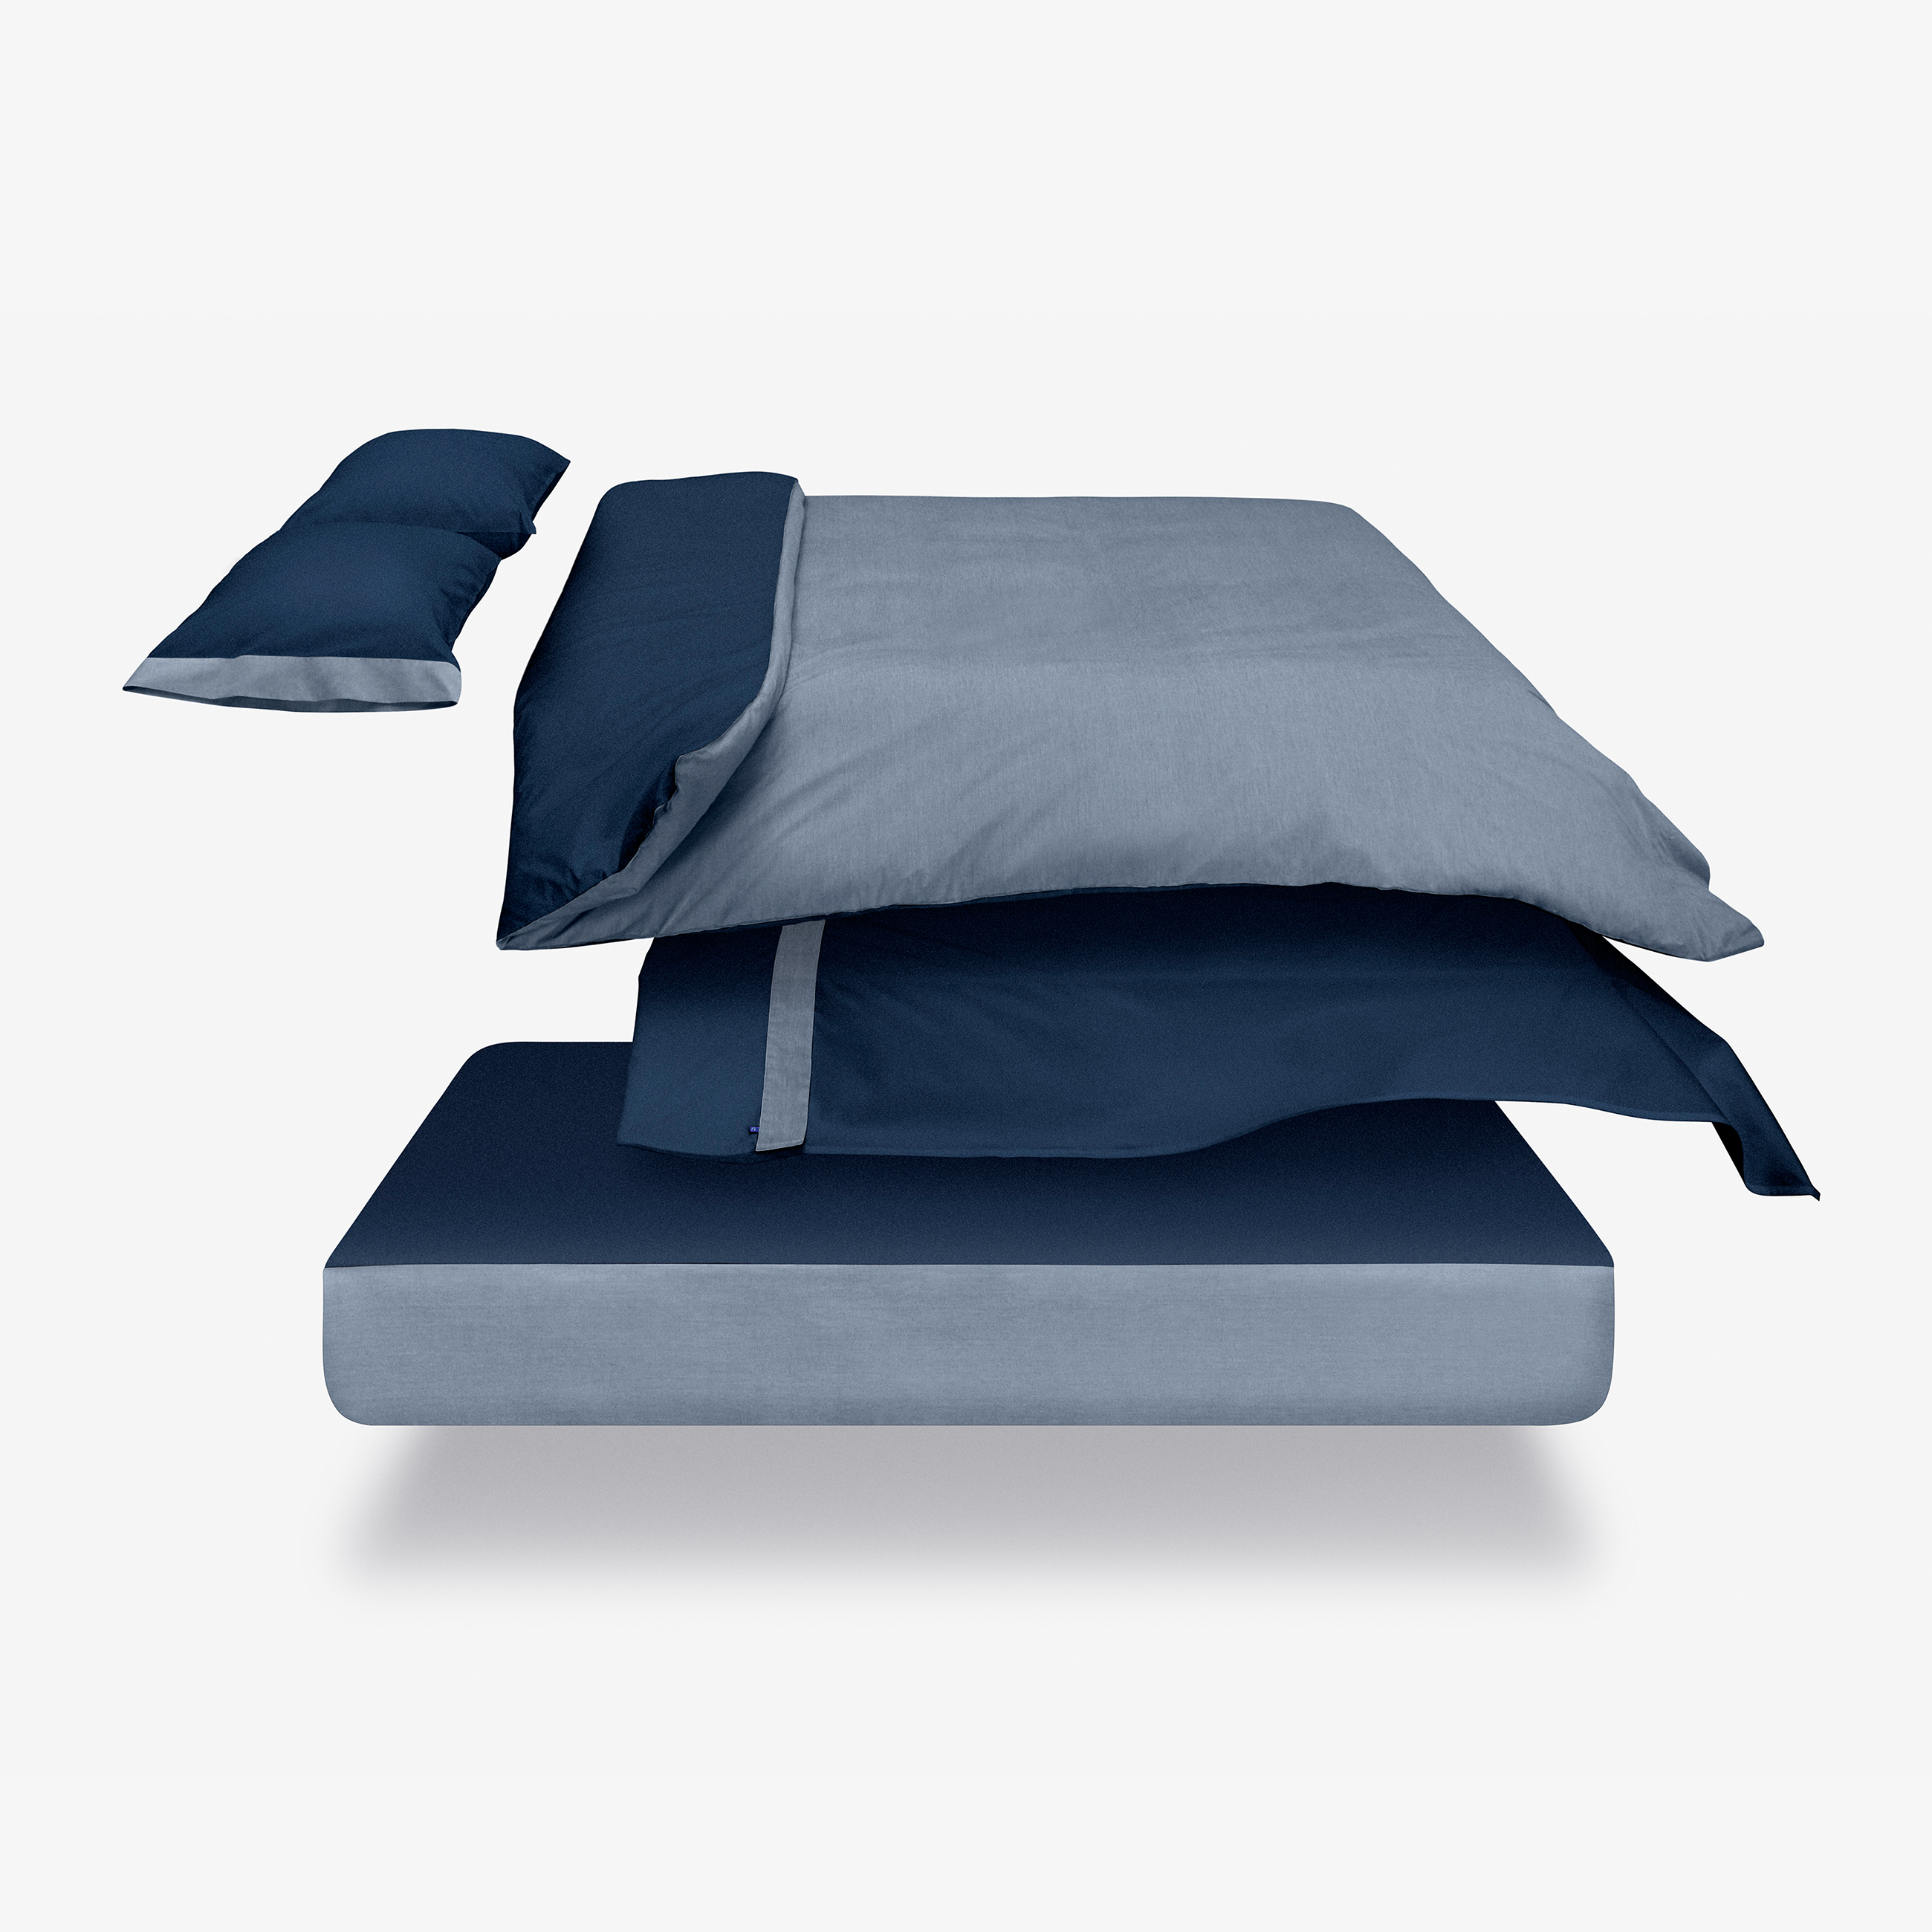 Premium Cotton Percale Duvet by Casper -  Full/Queen - Navy/Azure The Casper Full/Queen Navy/Azure duvet cover is made rom 100% extra-long staple Supima cotton.   We've found the ideal thread count to balance softness, strength, and breathability, so our percale weave is more breathable and longer lasting than other popular weaves. Plus, hidden openings offer easy access to the securing snaps in each corner. Try it for 100 nights, risk-free.